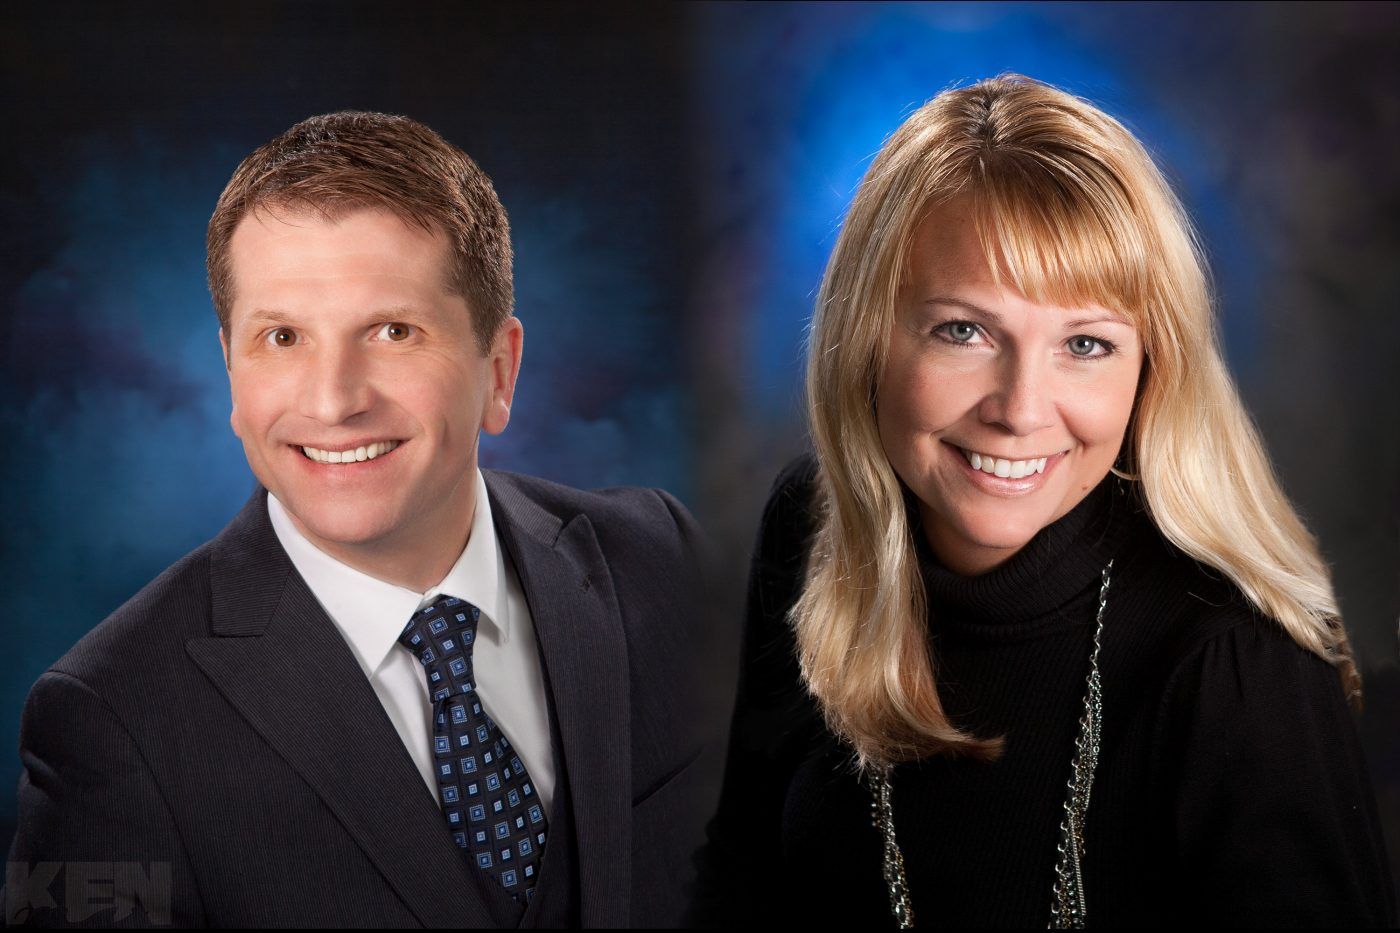 Portraits and Headshots of Business Professionals